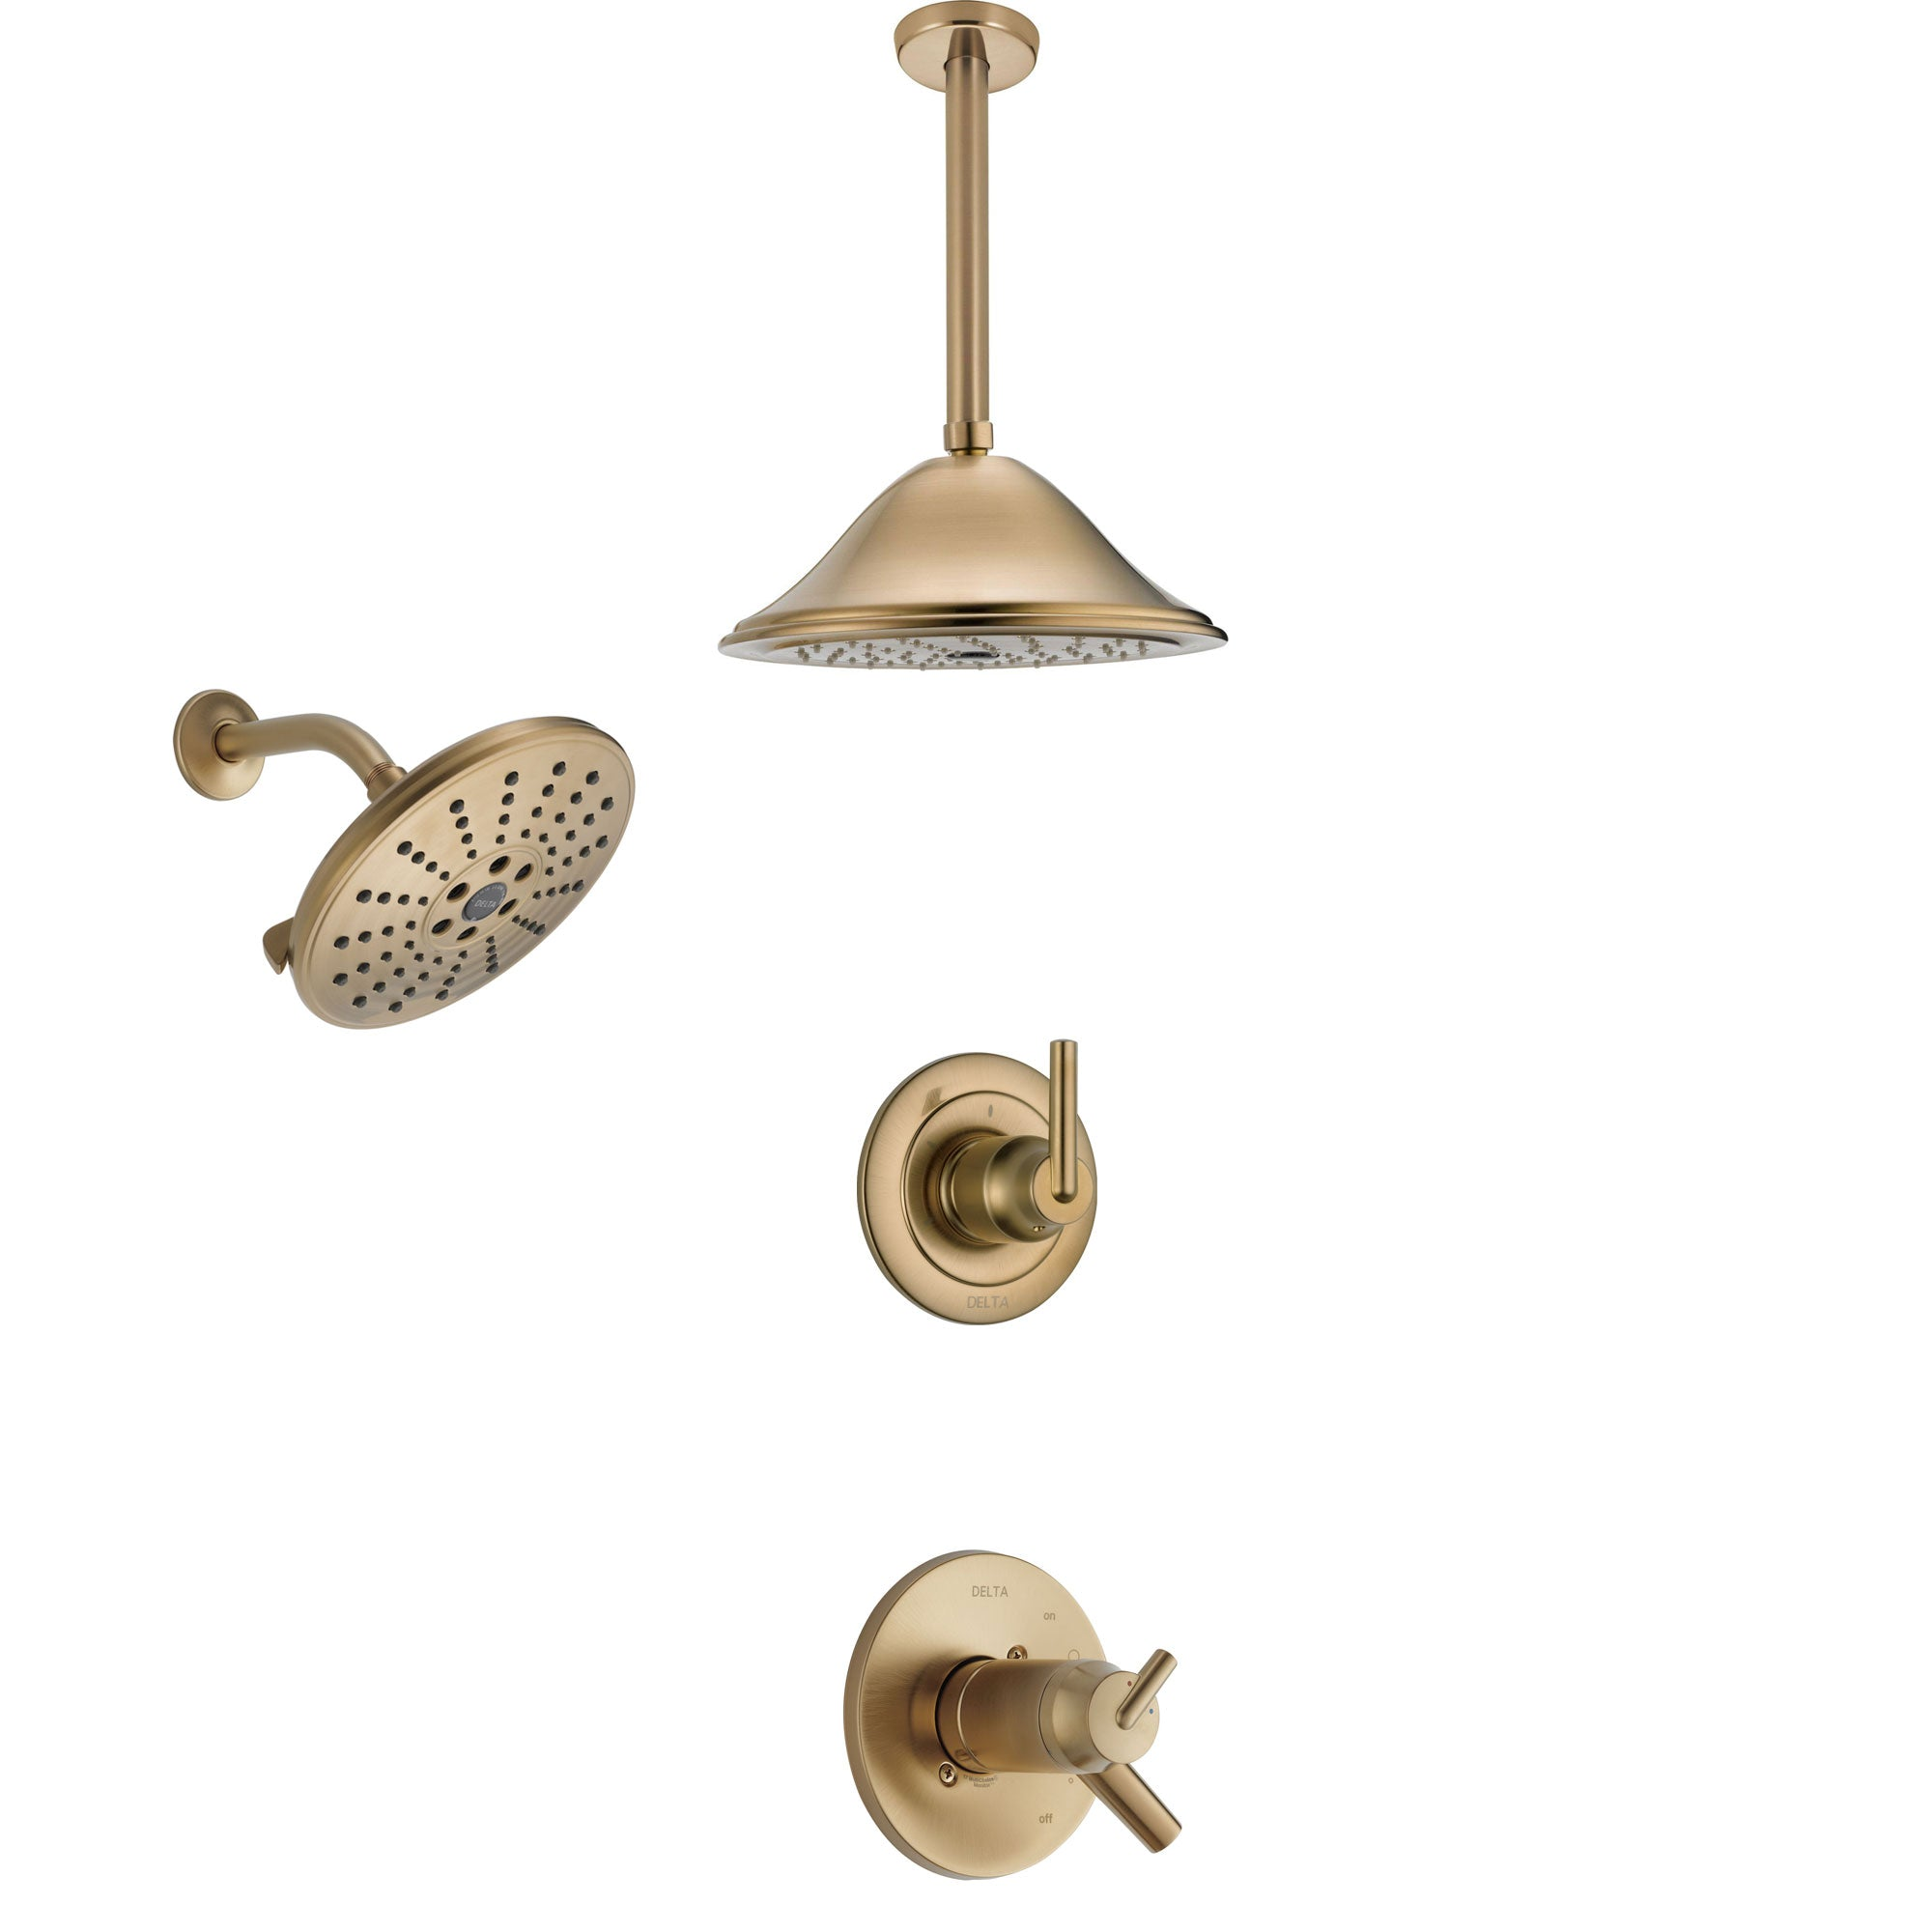 Delta Trinsic Champagne Bronze Shower System with Dual Thermostatic Control Handle, Diverter, Showerhead, and Ceiling Mount Showerhead SS17T2592CZ5